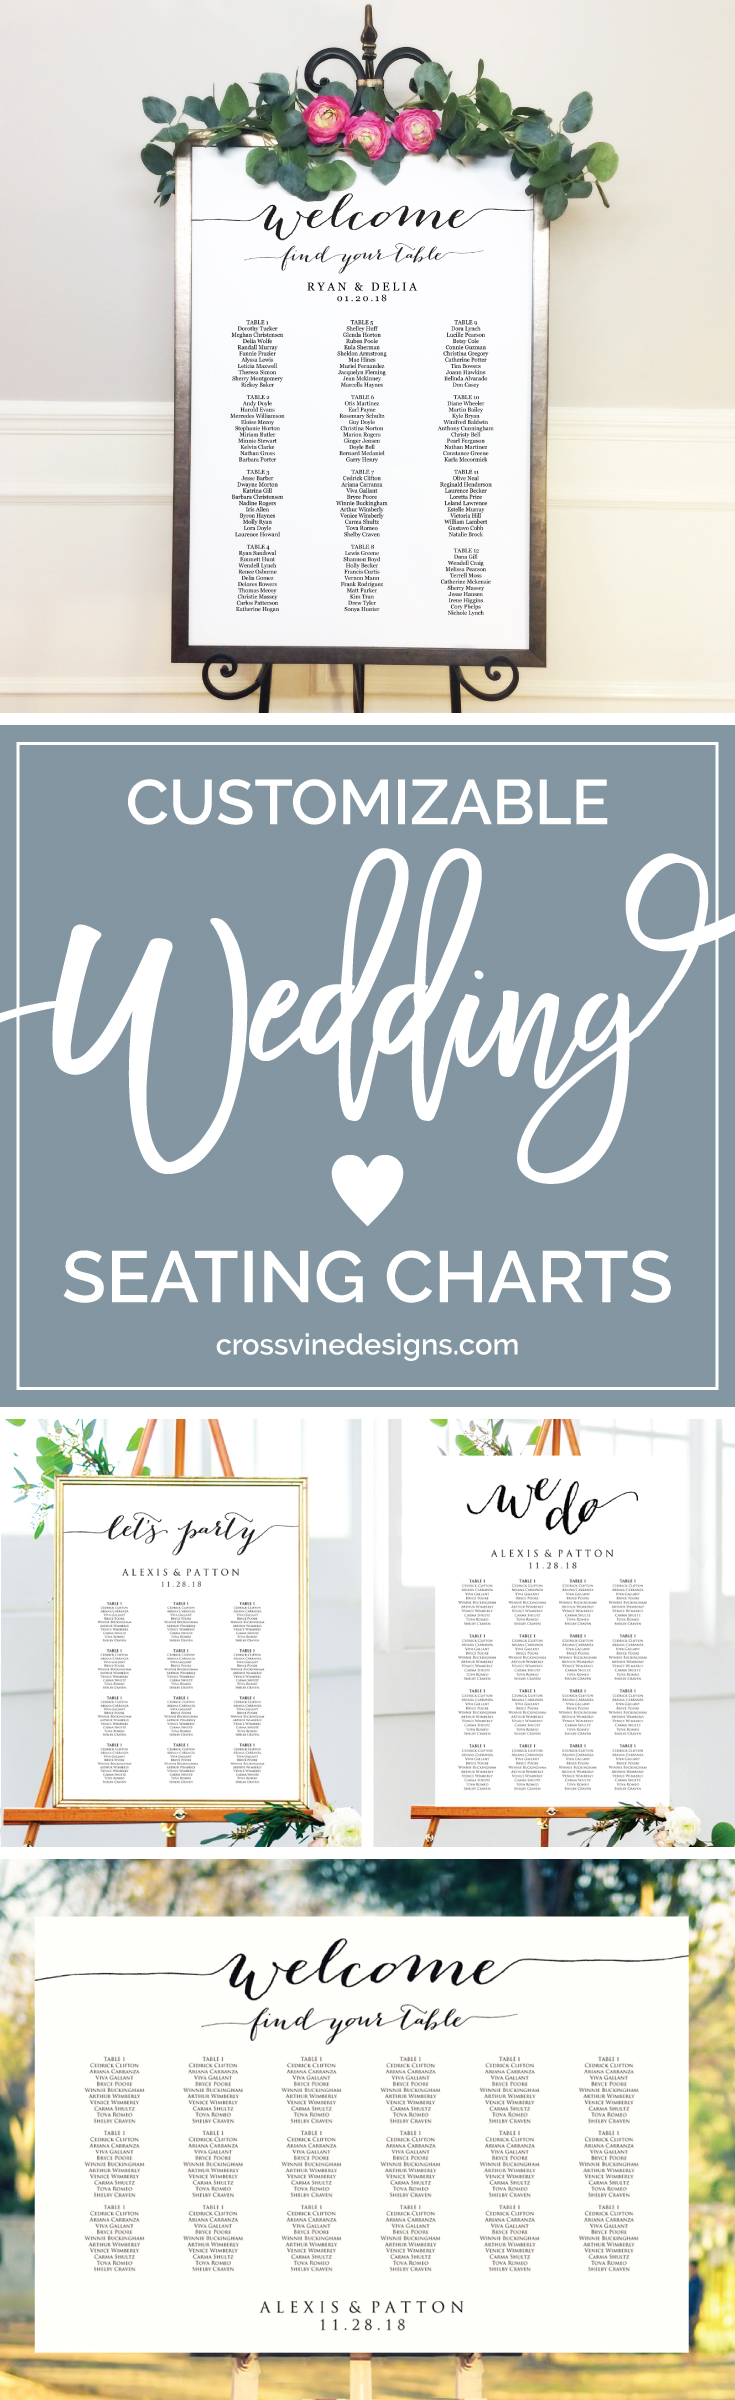 wedding seating charts on pinterest wedding templates and printables